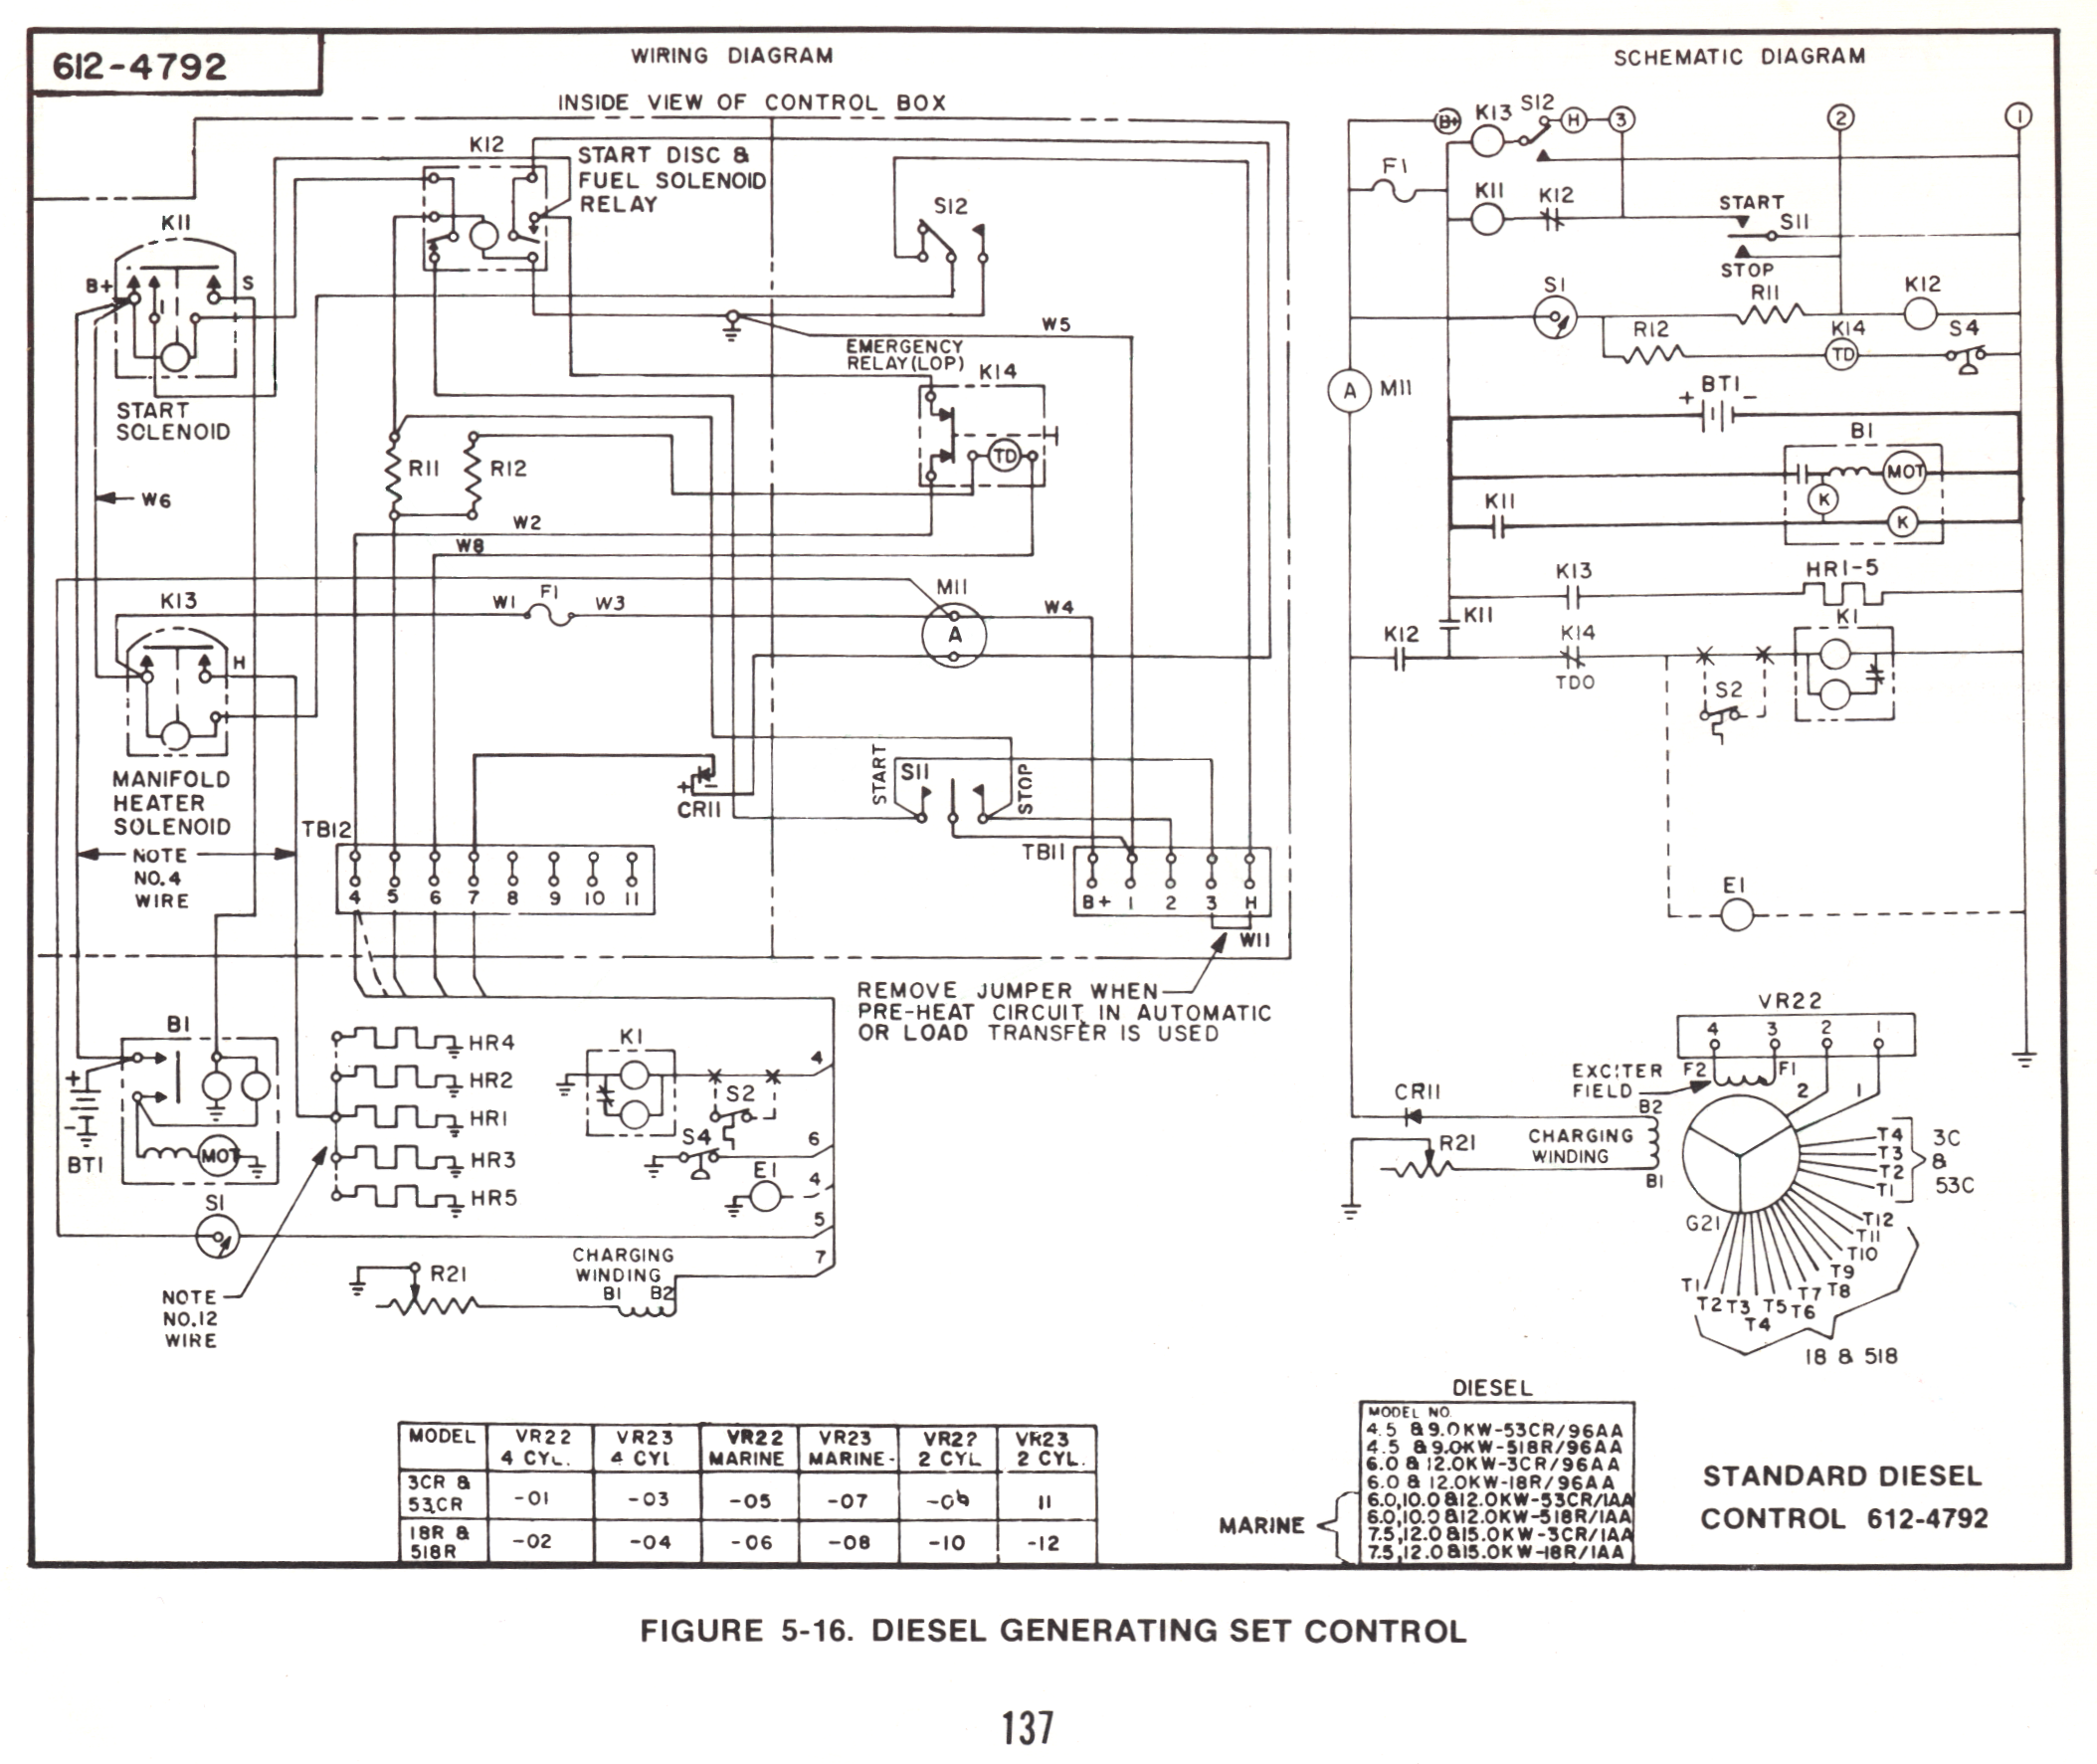 Onan_Diesel_Controls_612 4792_b onan stuff onan rv generator wiring diagram at mr168.co